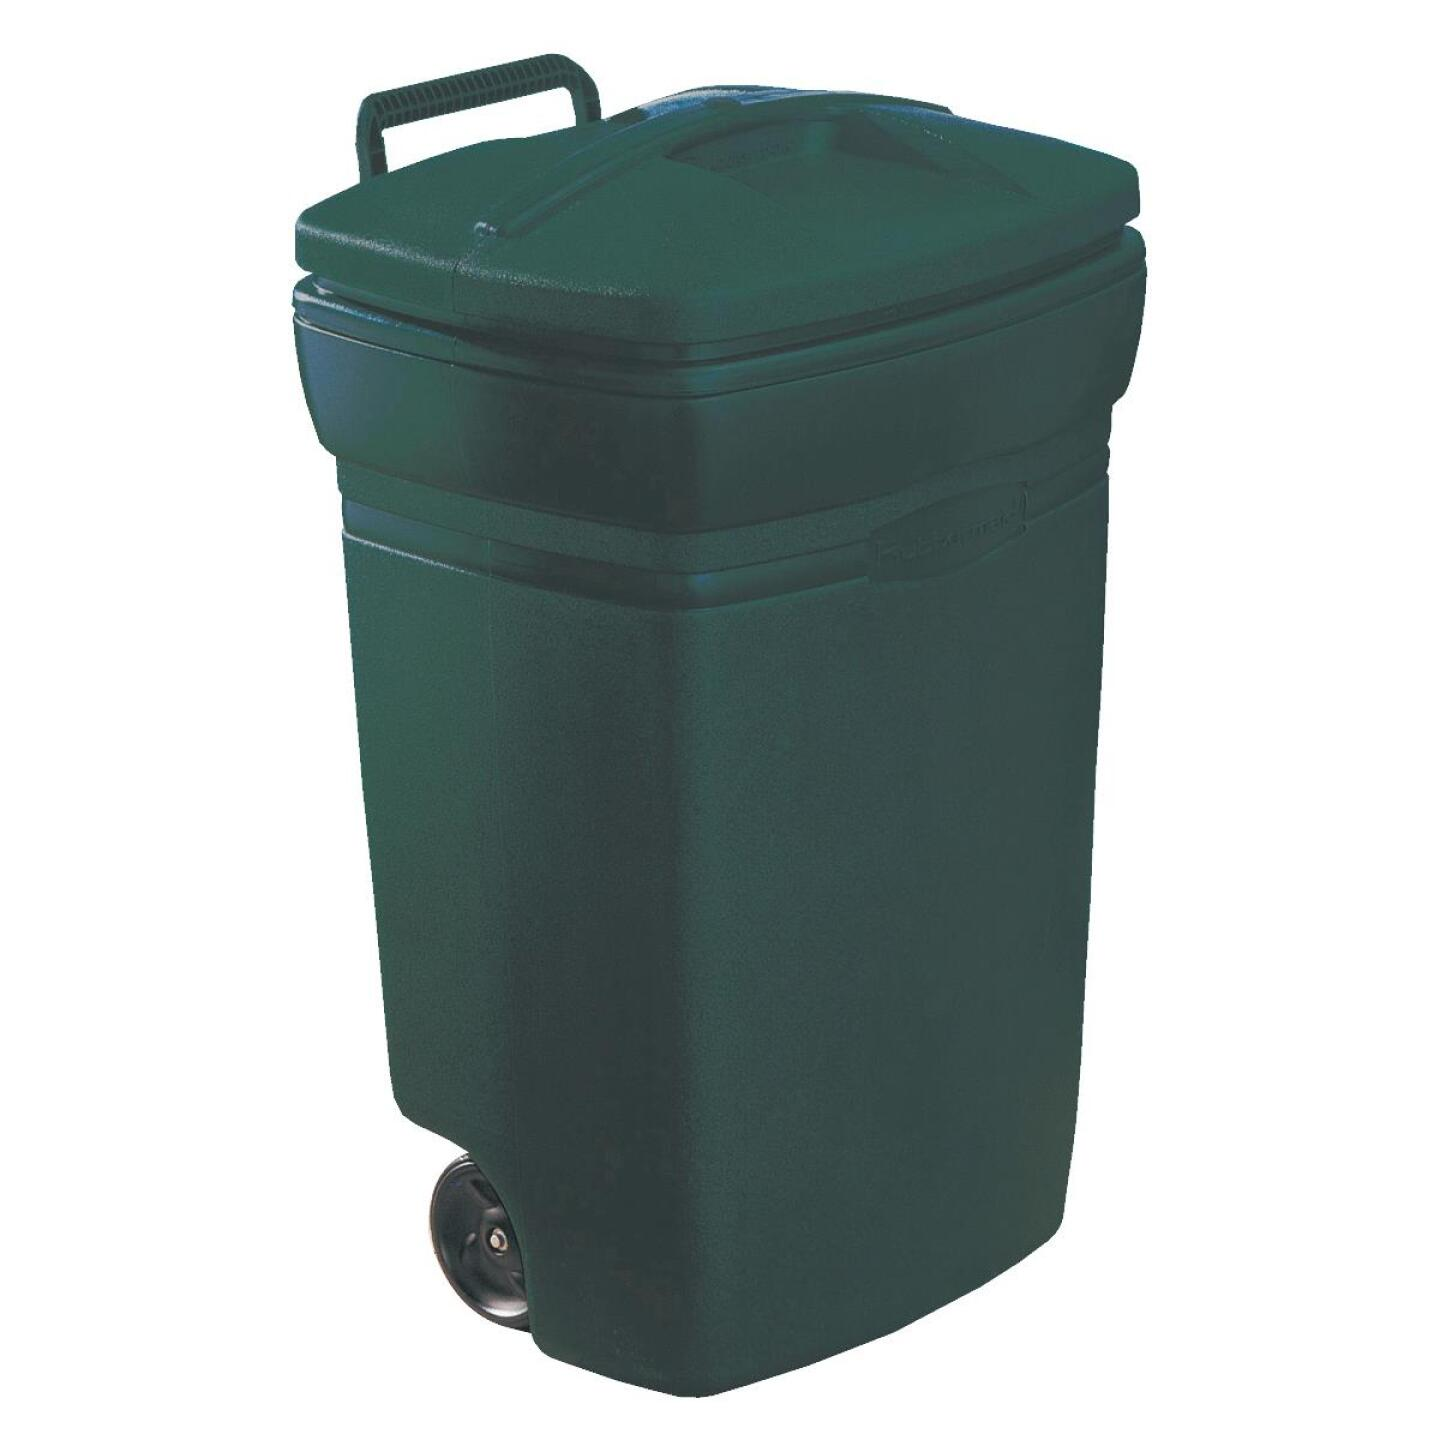 Rubbermaid 45 Gal. Green Wheeled Trash Can with Lid Image 1